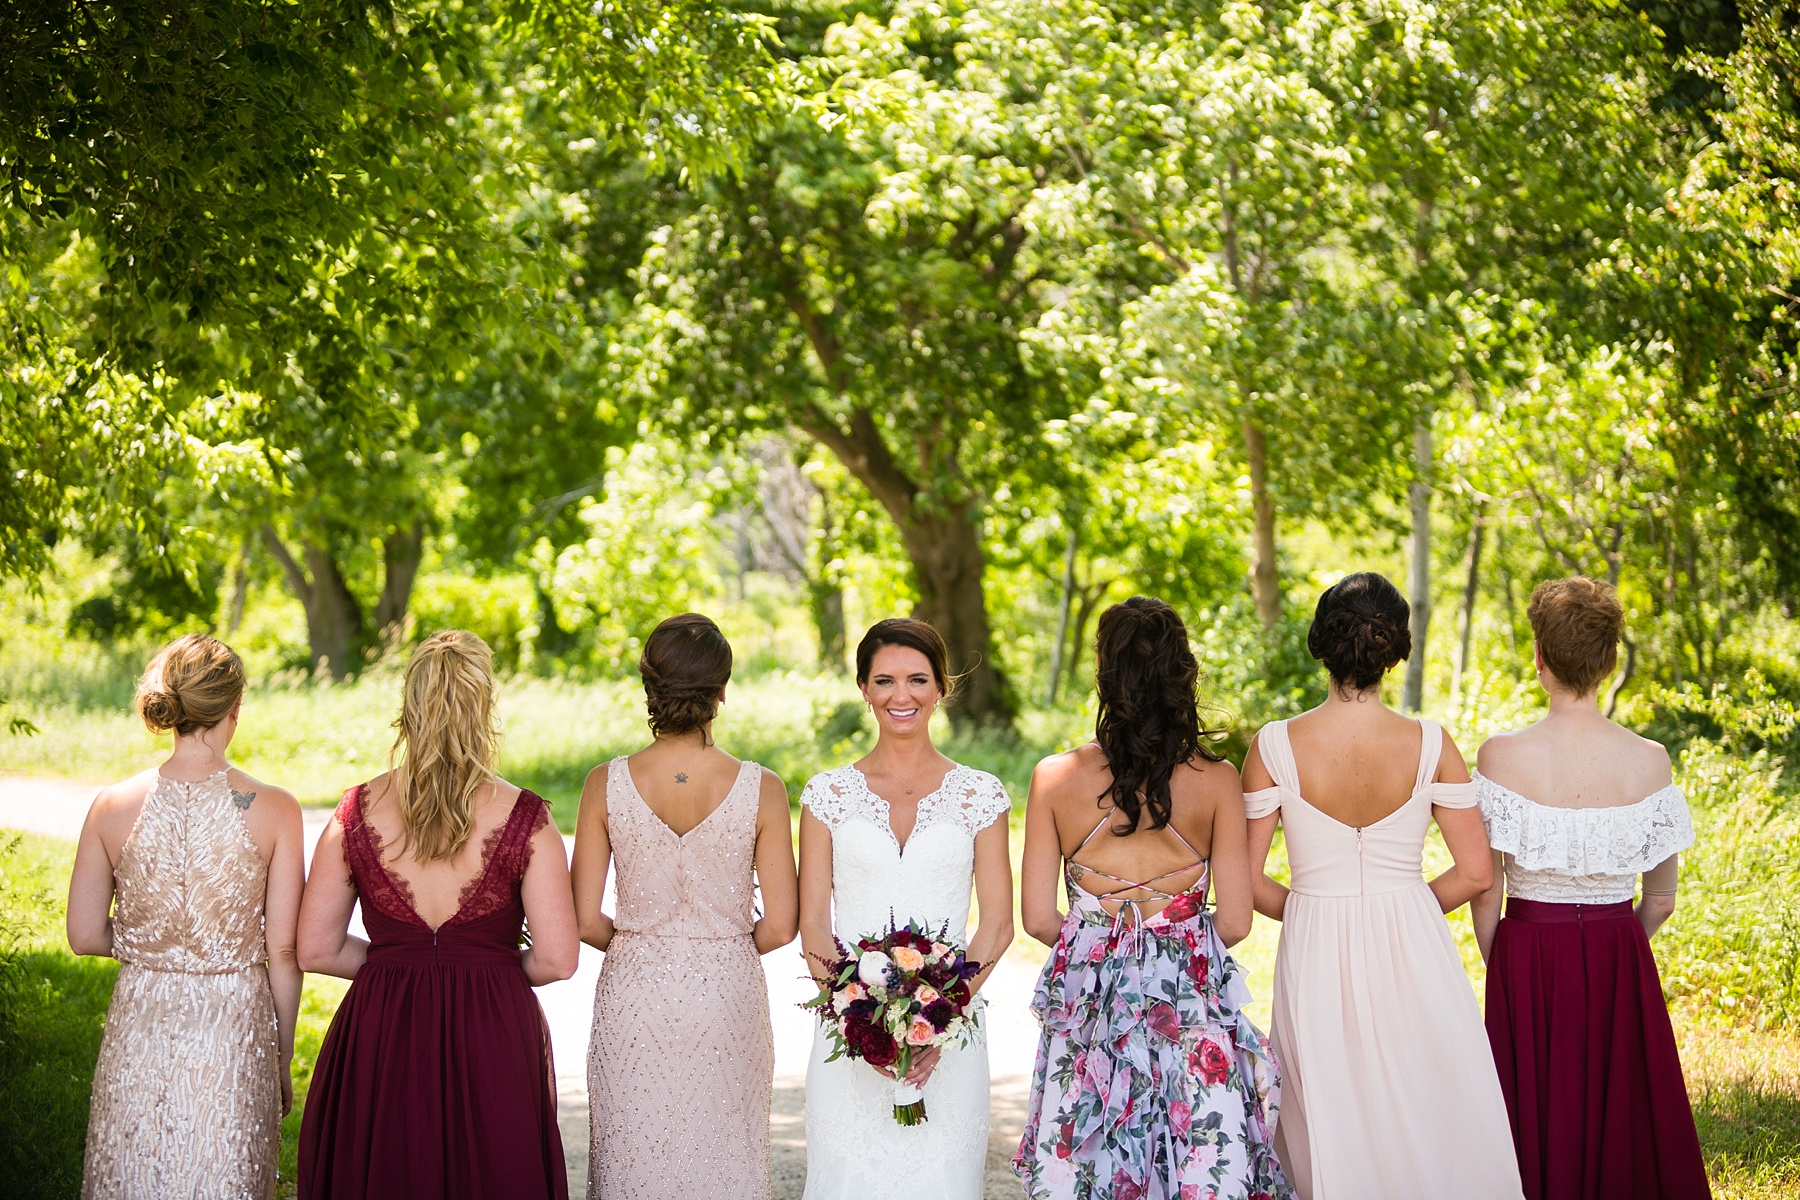 Brandon_Shafer_Photography_Traverse_City_Wedding_0020.jpg